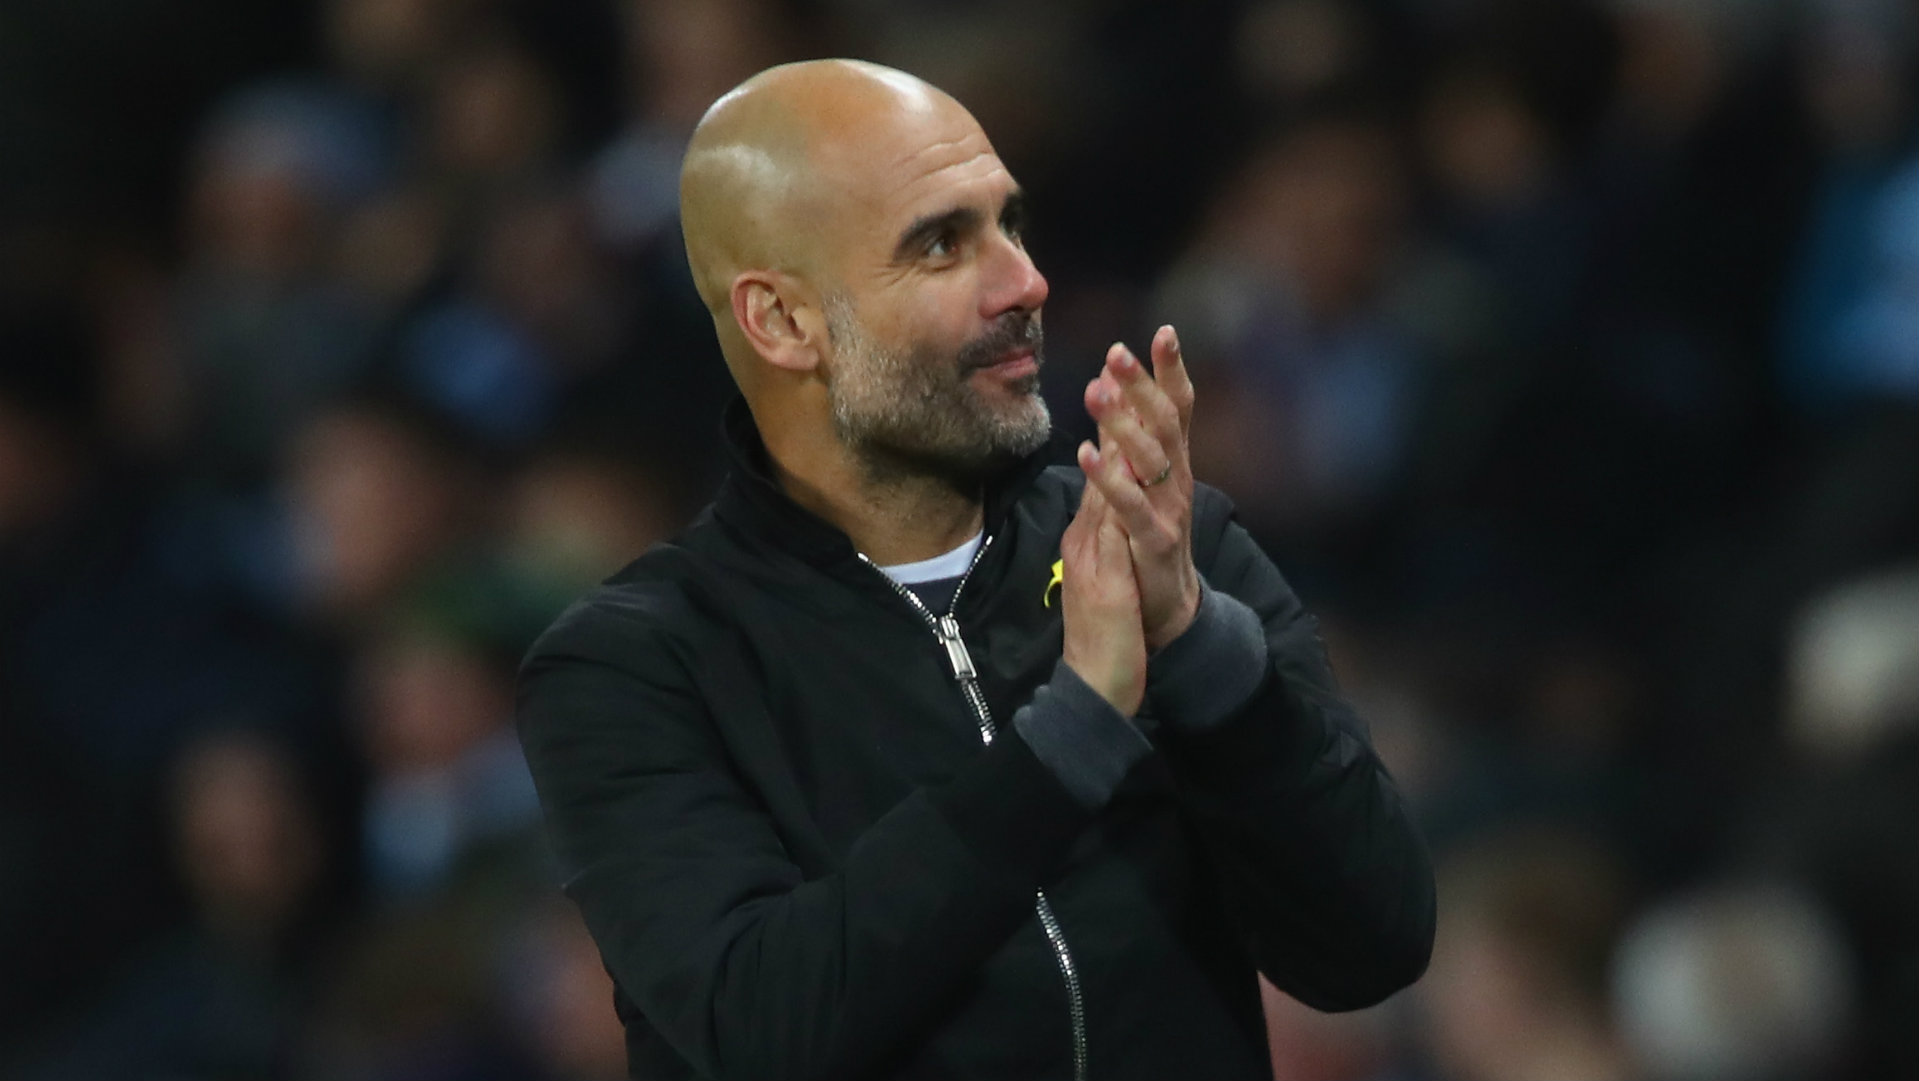 Pep Guardiola, Manchester City vs West Ham, 17/18